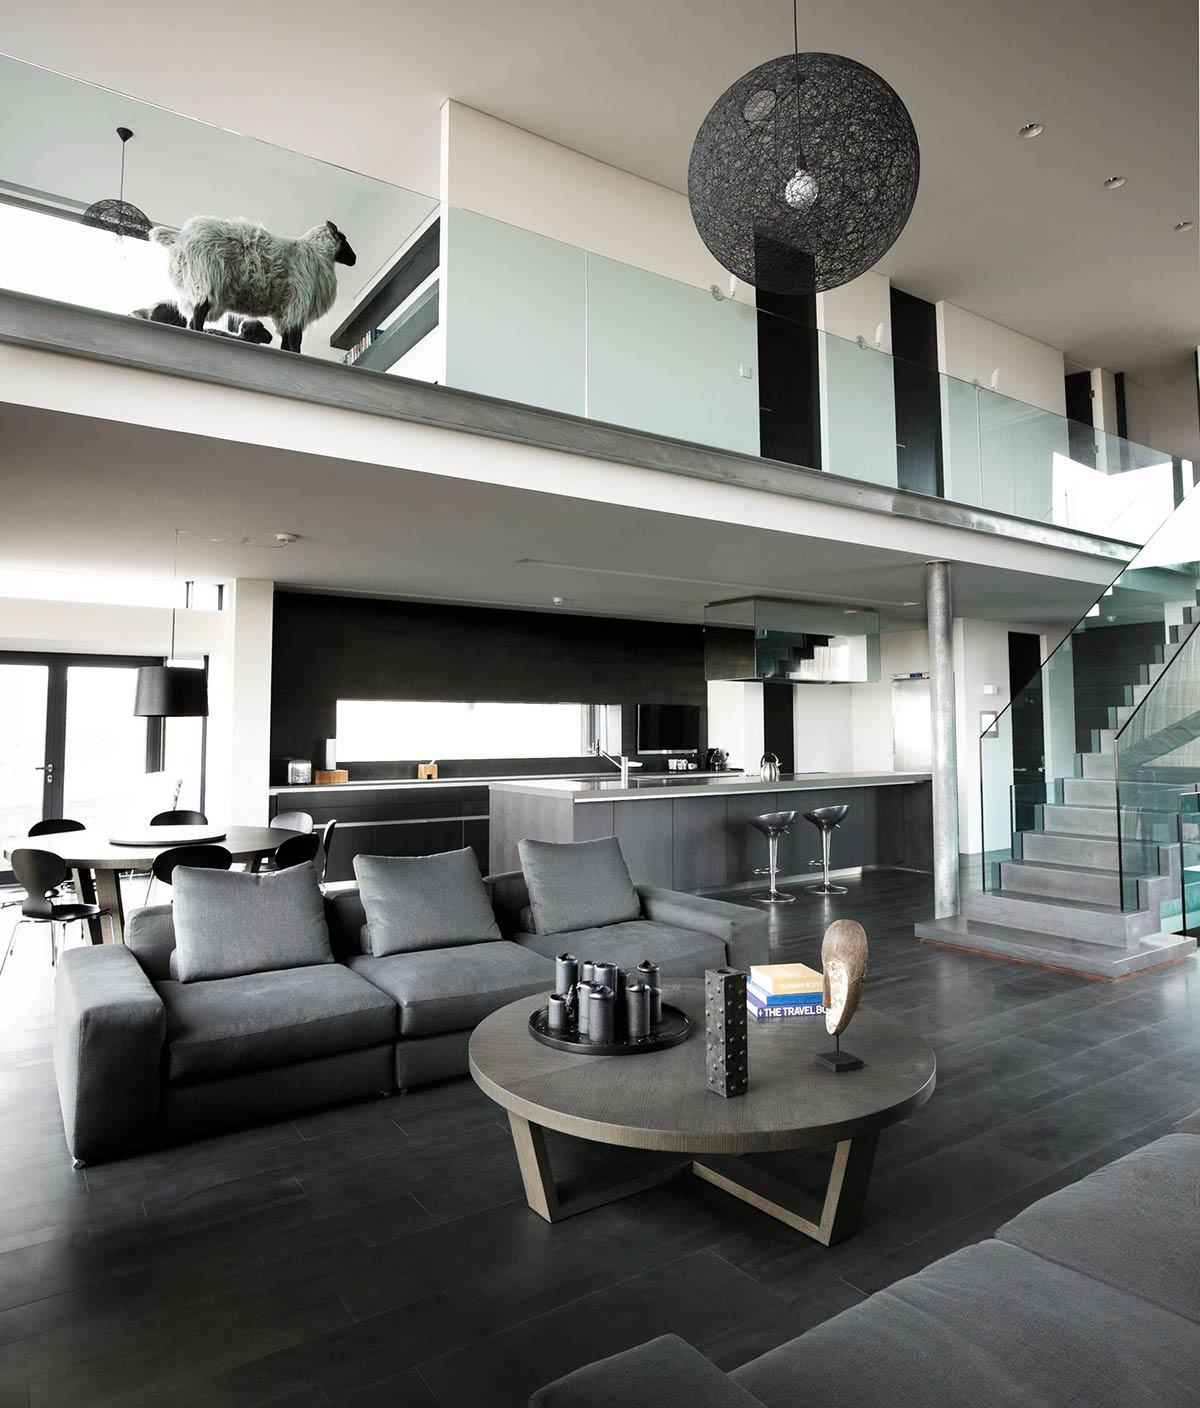 Living Space, Kitchen, Grey Sofas, Vacation Home in Iceland Inspired by Nature